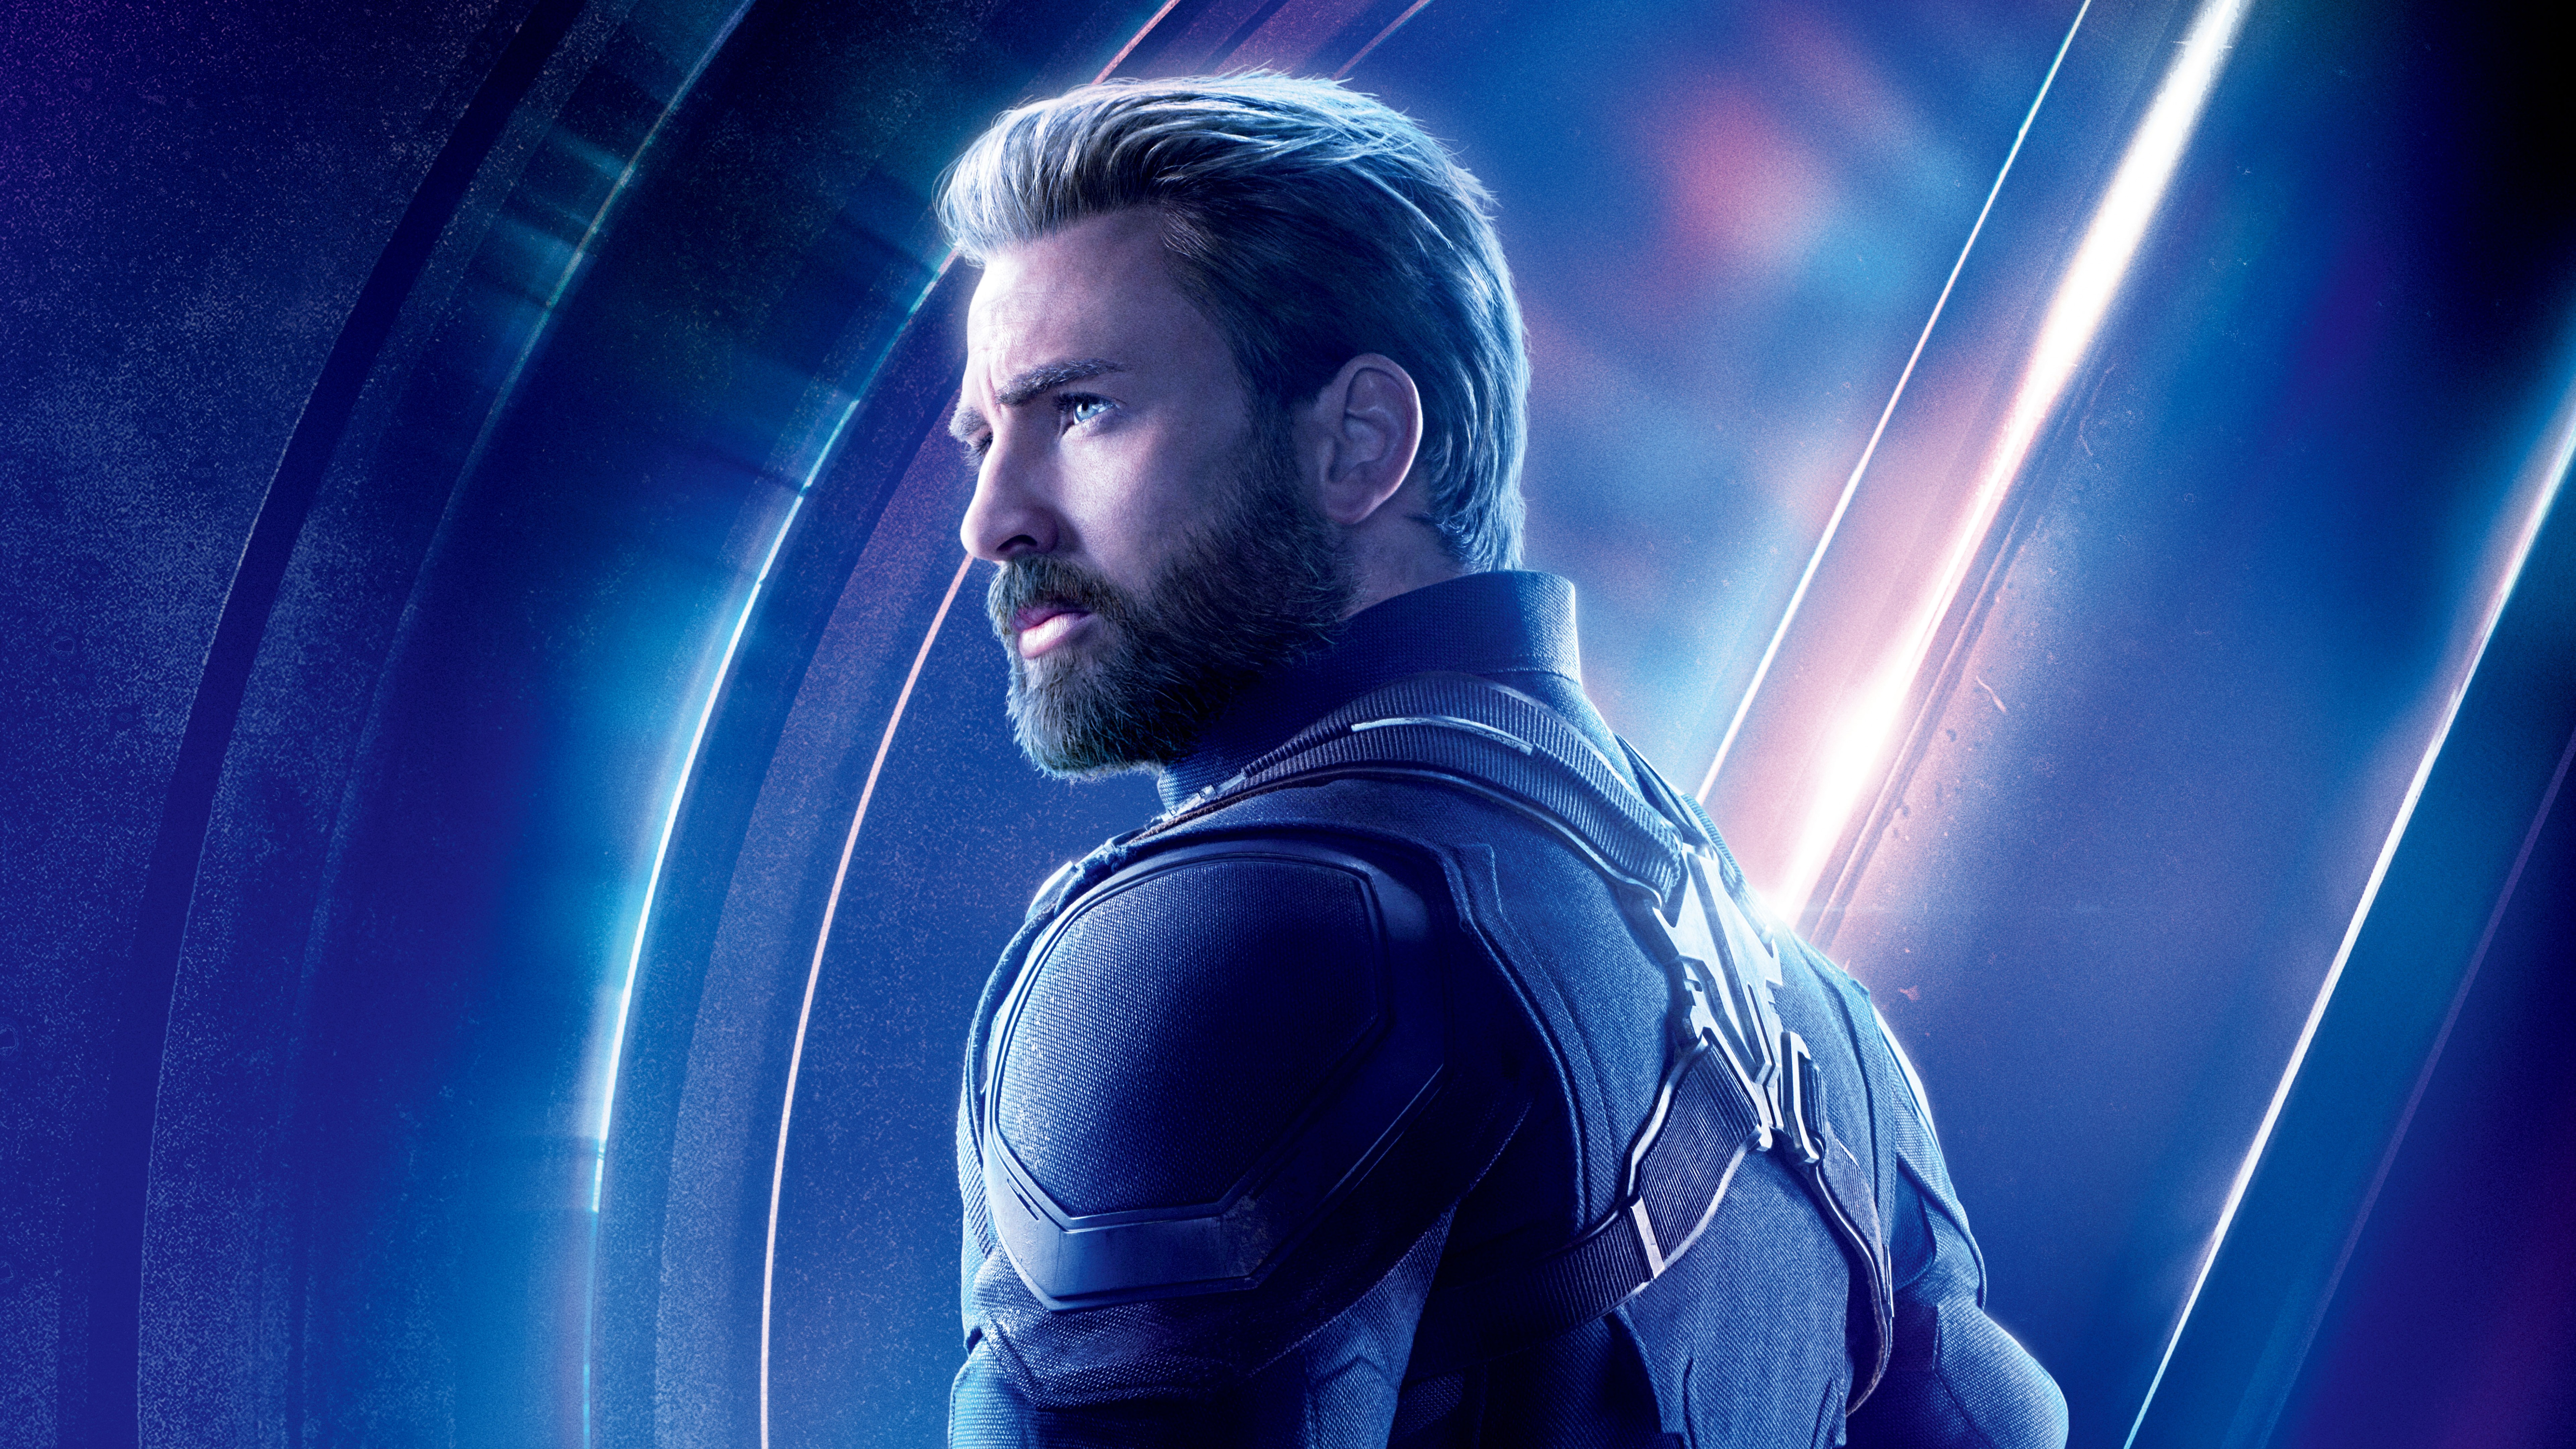 Amazing Quotes Wallpapers For Facebook Wallpaper Avengers Infinity War Captain America Chris